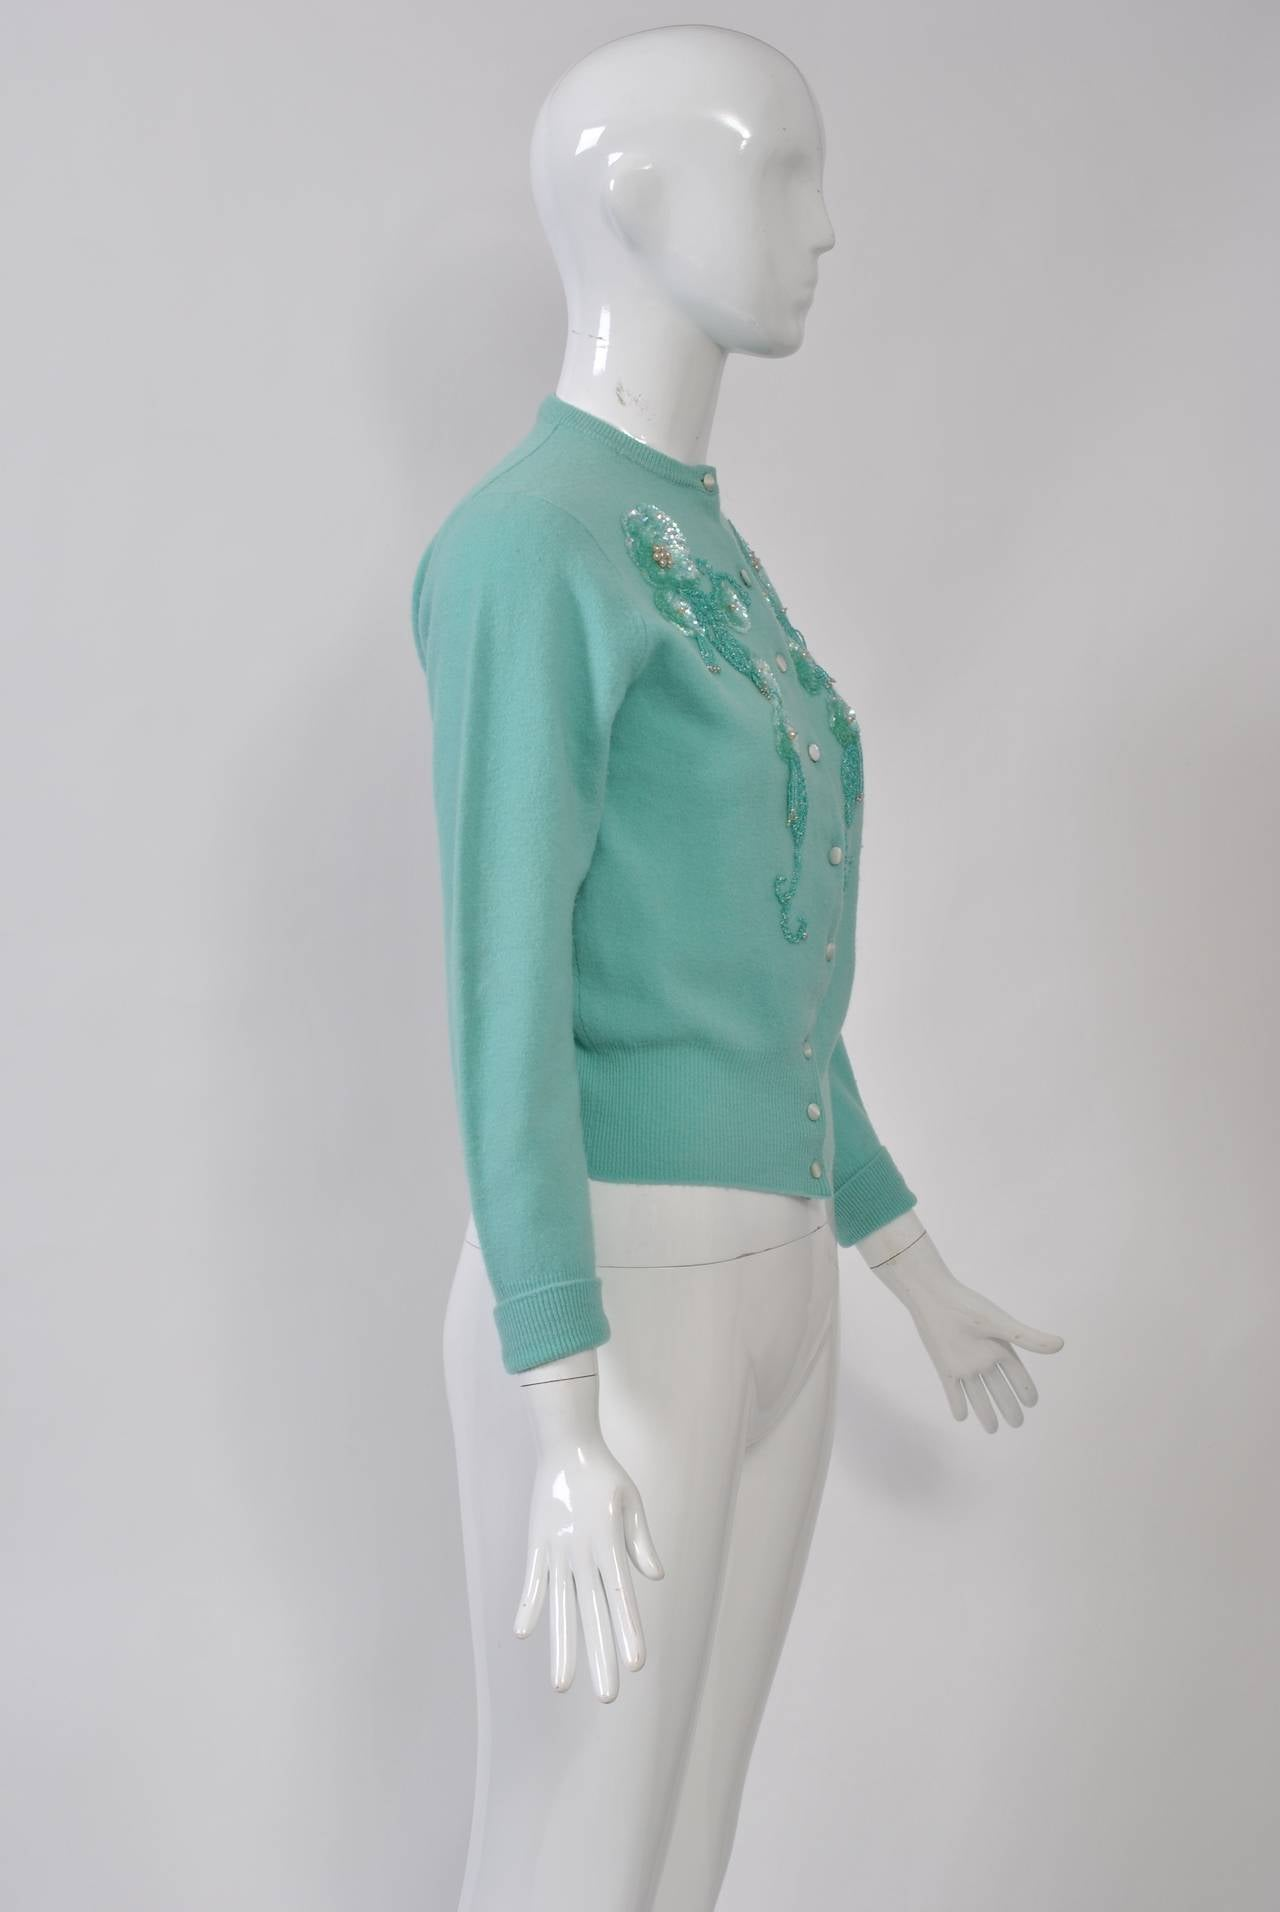 Among our favorite vintage pieces are the decorated cardigans from the 1950s-'60s. This example is in a beautiful shade of aqua and is embellished with matching beads and sequins. Unlined. Small size.